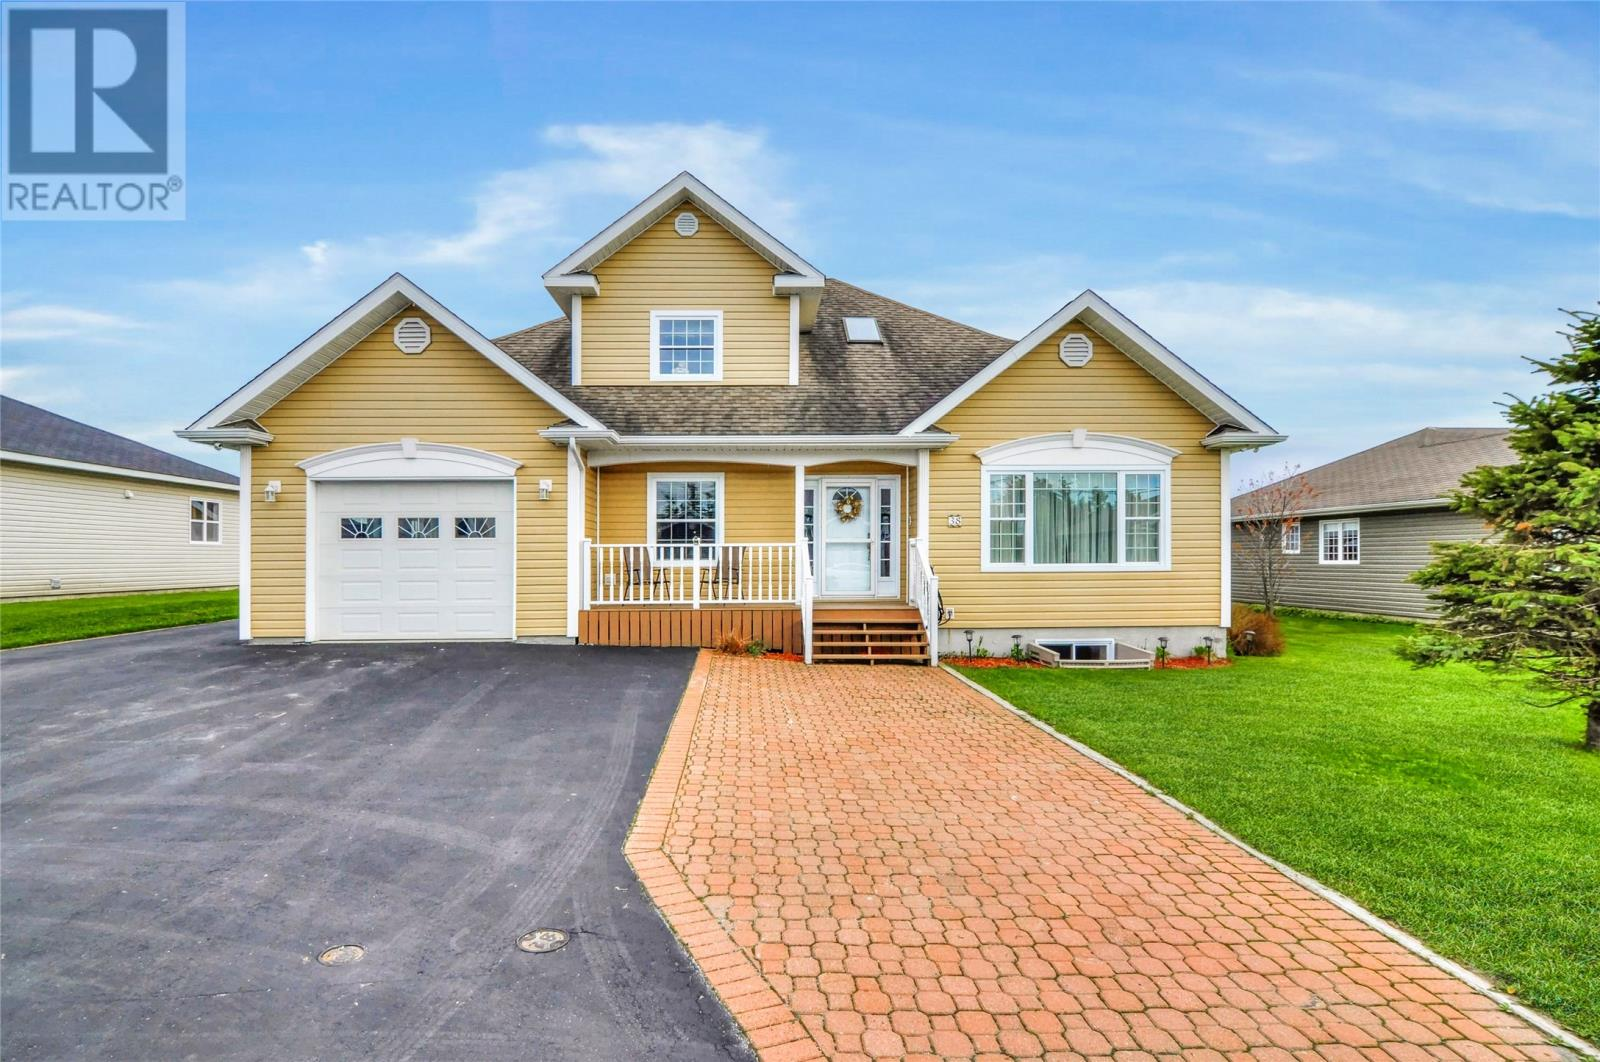 1216852, 38 Fowlow Drive, Stephenville